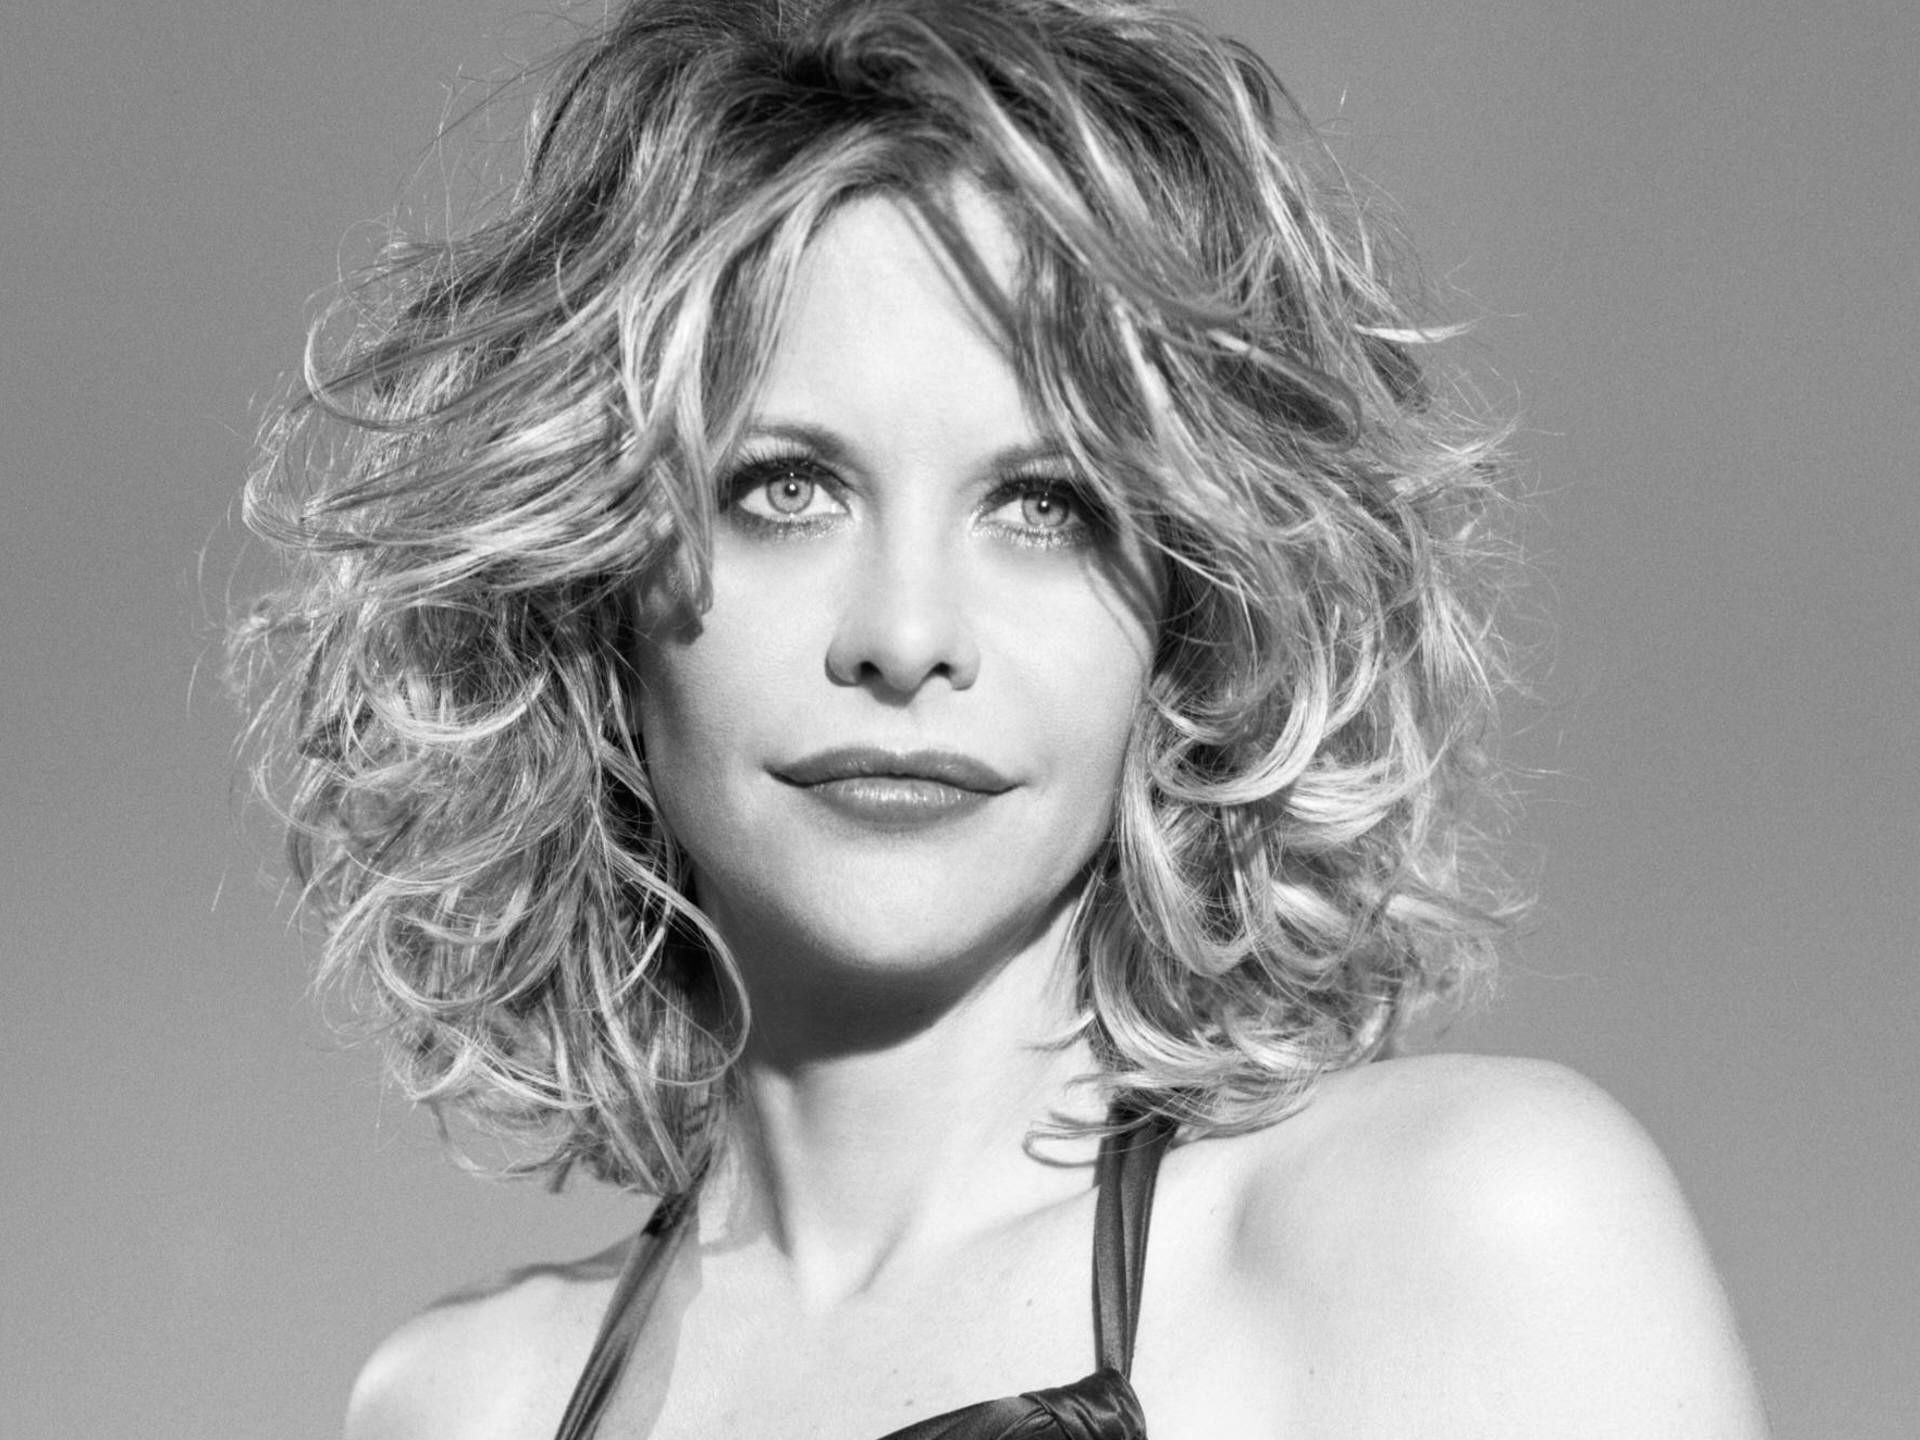 Meg ryan wallpapers images photos pictures backgrounds for Meg ryan h